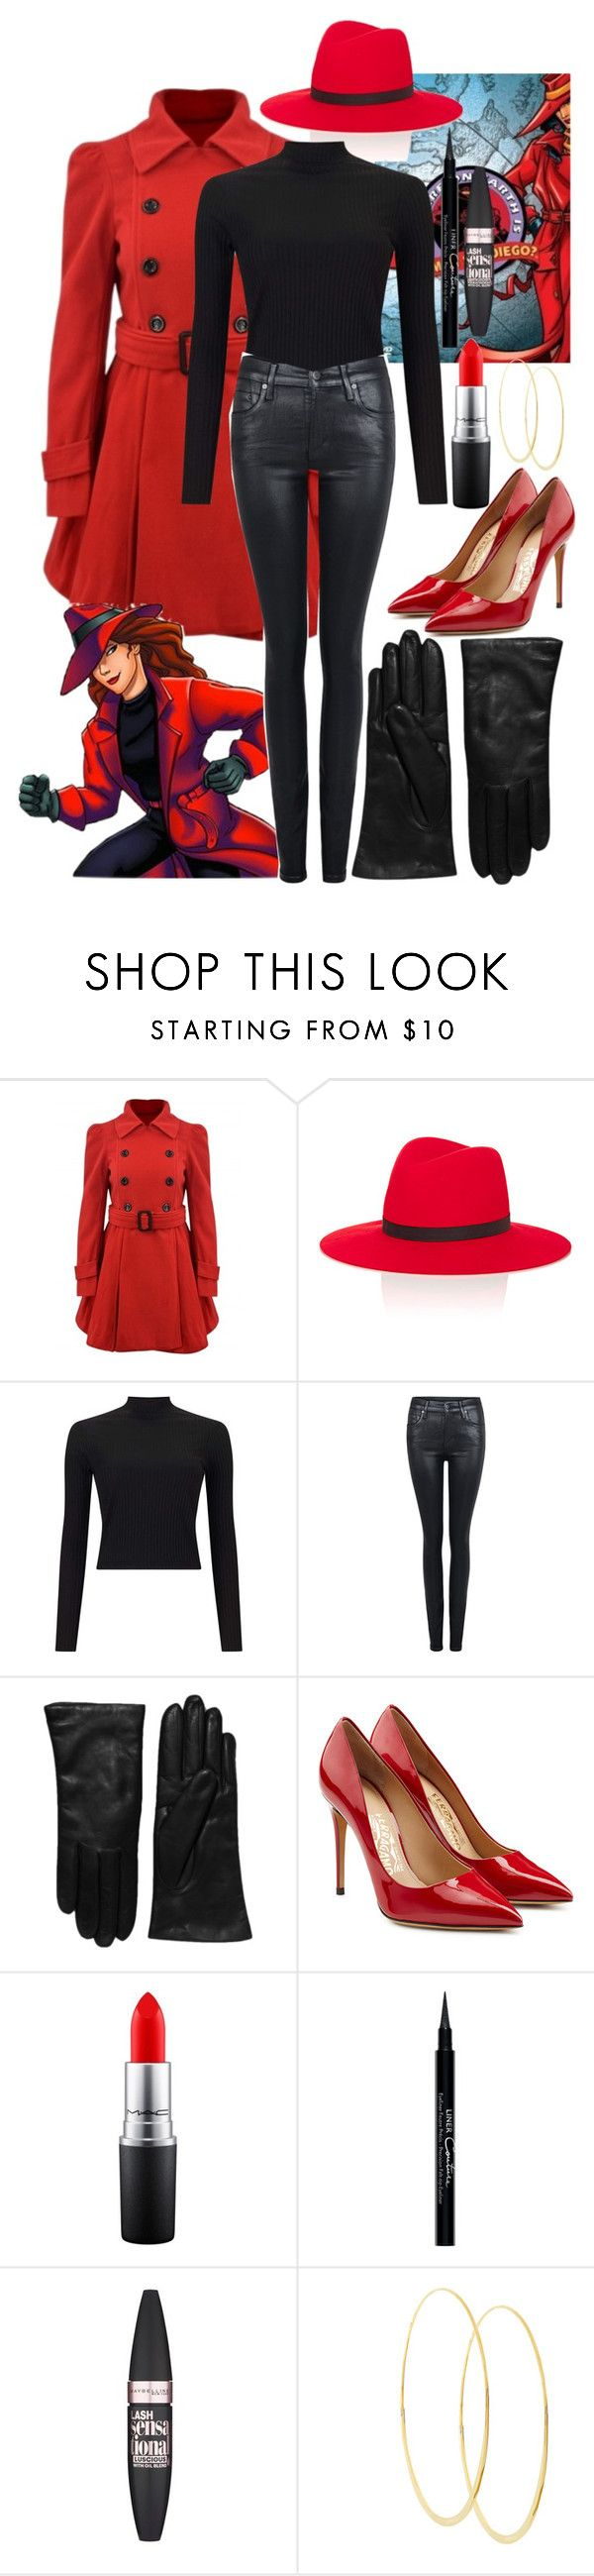 """Carmen Sandiego"" by panenguin ❤ liked on Polyvore featuring Janessa Leone, Miss Selfridge, Citizens of Humanity, Saks Fifth Avenue Collection, Salvatore Ferragamo, MAC Cosmetics, Givenchy, Maybelline, Lana and Halloween"